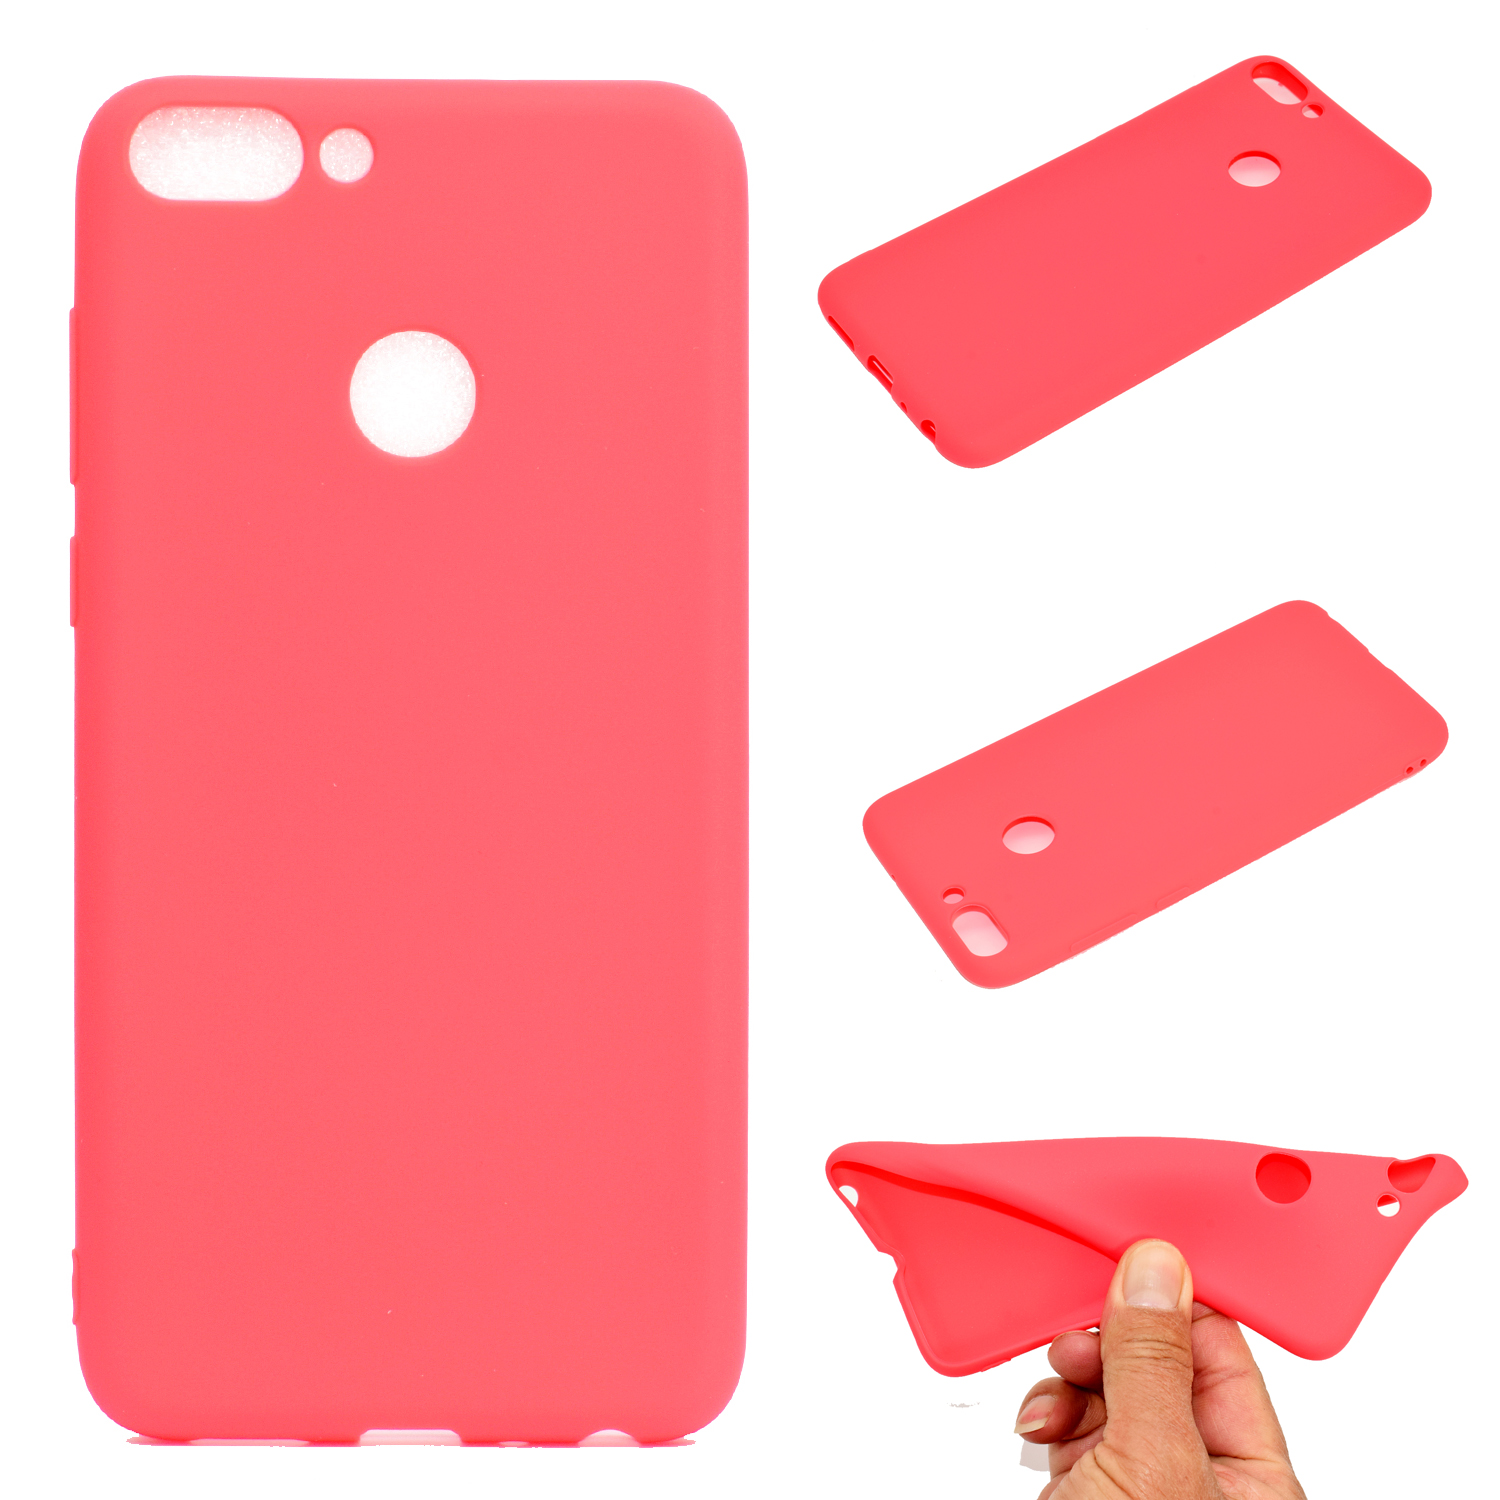 for HUAWEI Honor 9 lite Cute Candy Color Matte TPU Anti-scratch Non-slip Protective Cover Back Case red